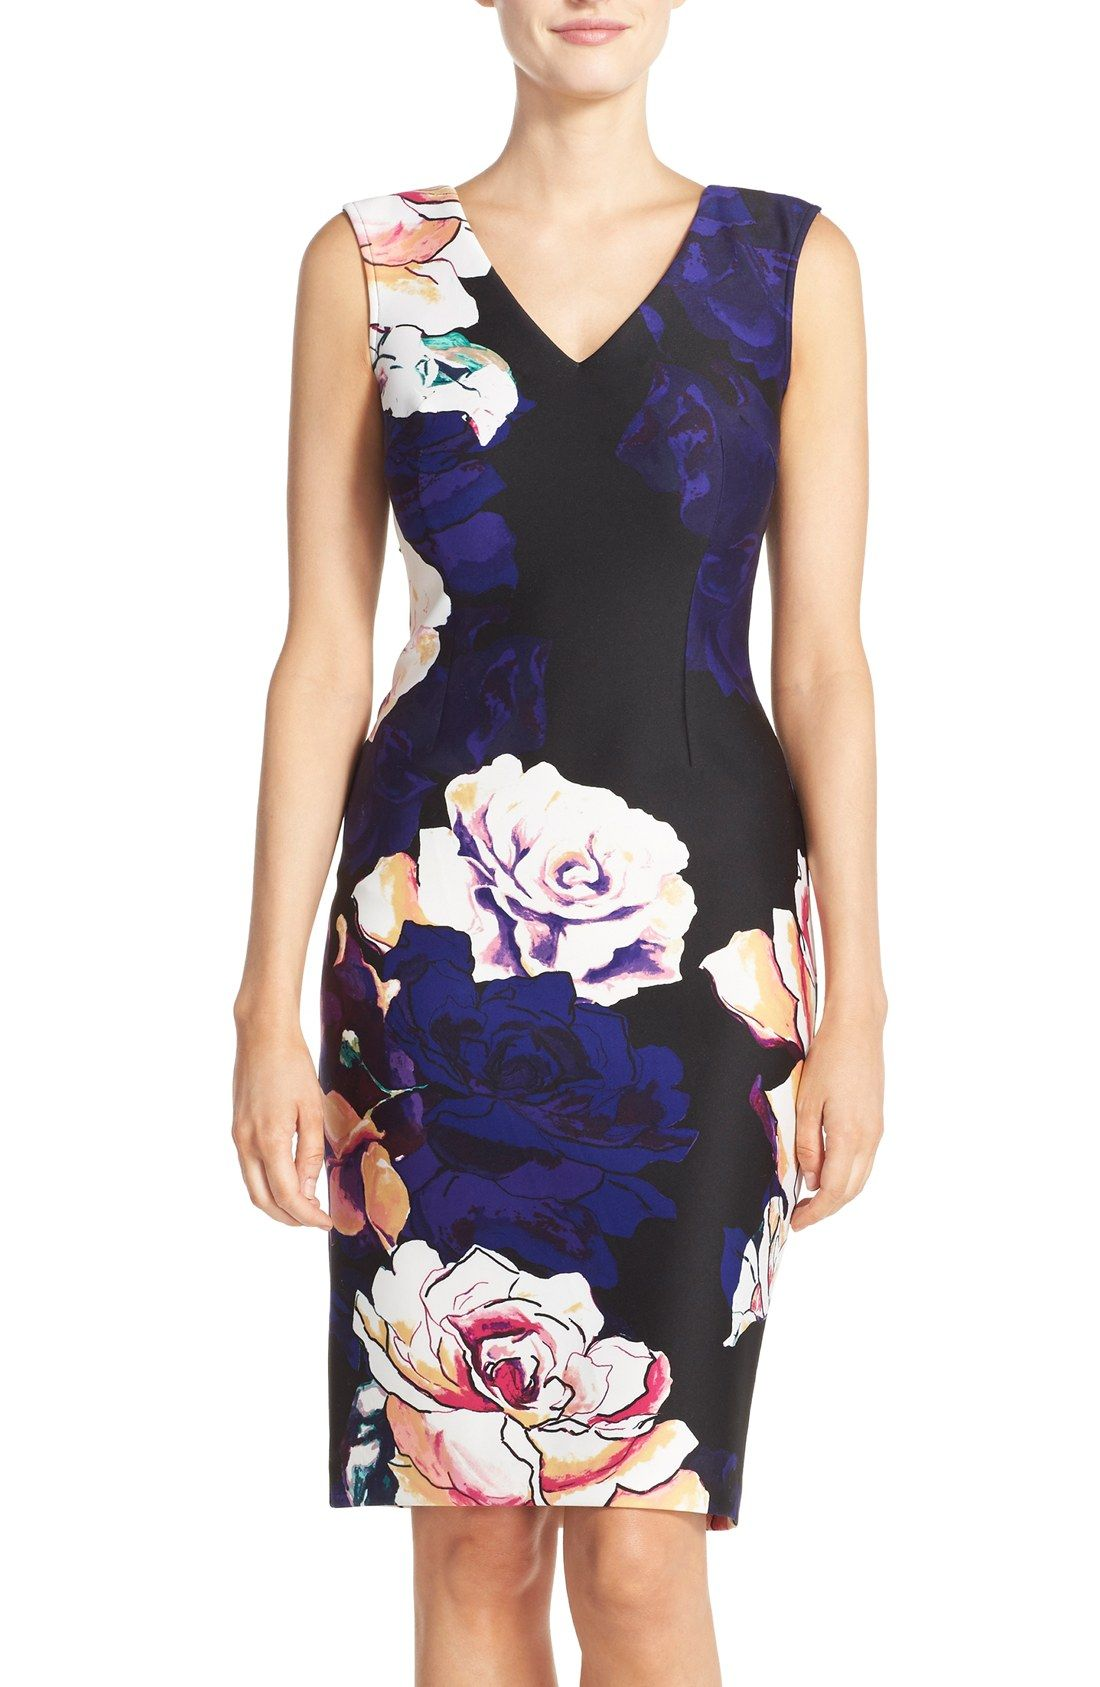 a40fc259917e Adrianna Papell Floral Print Scuba Sheath Dress | My Style in 2019 ...